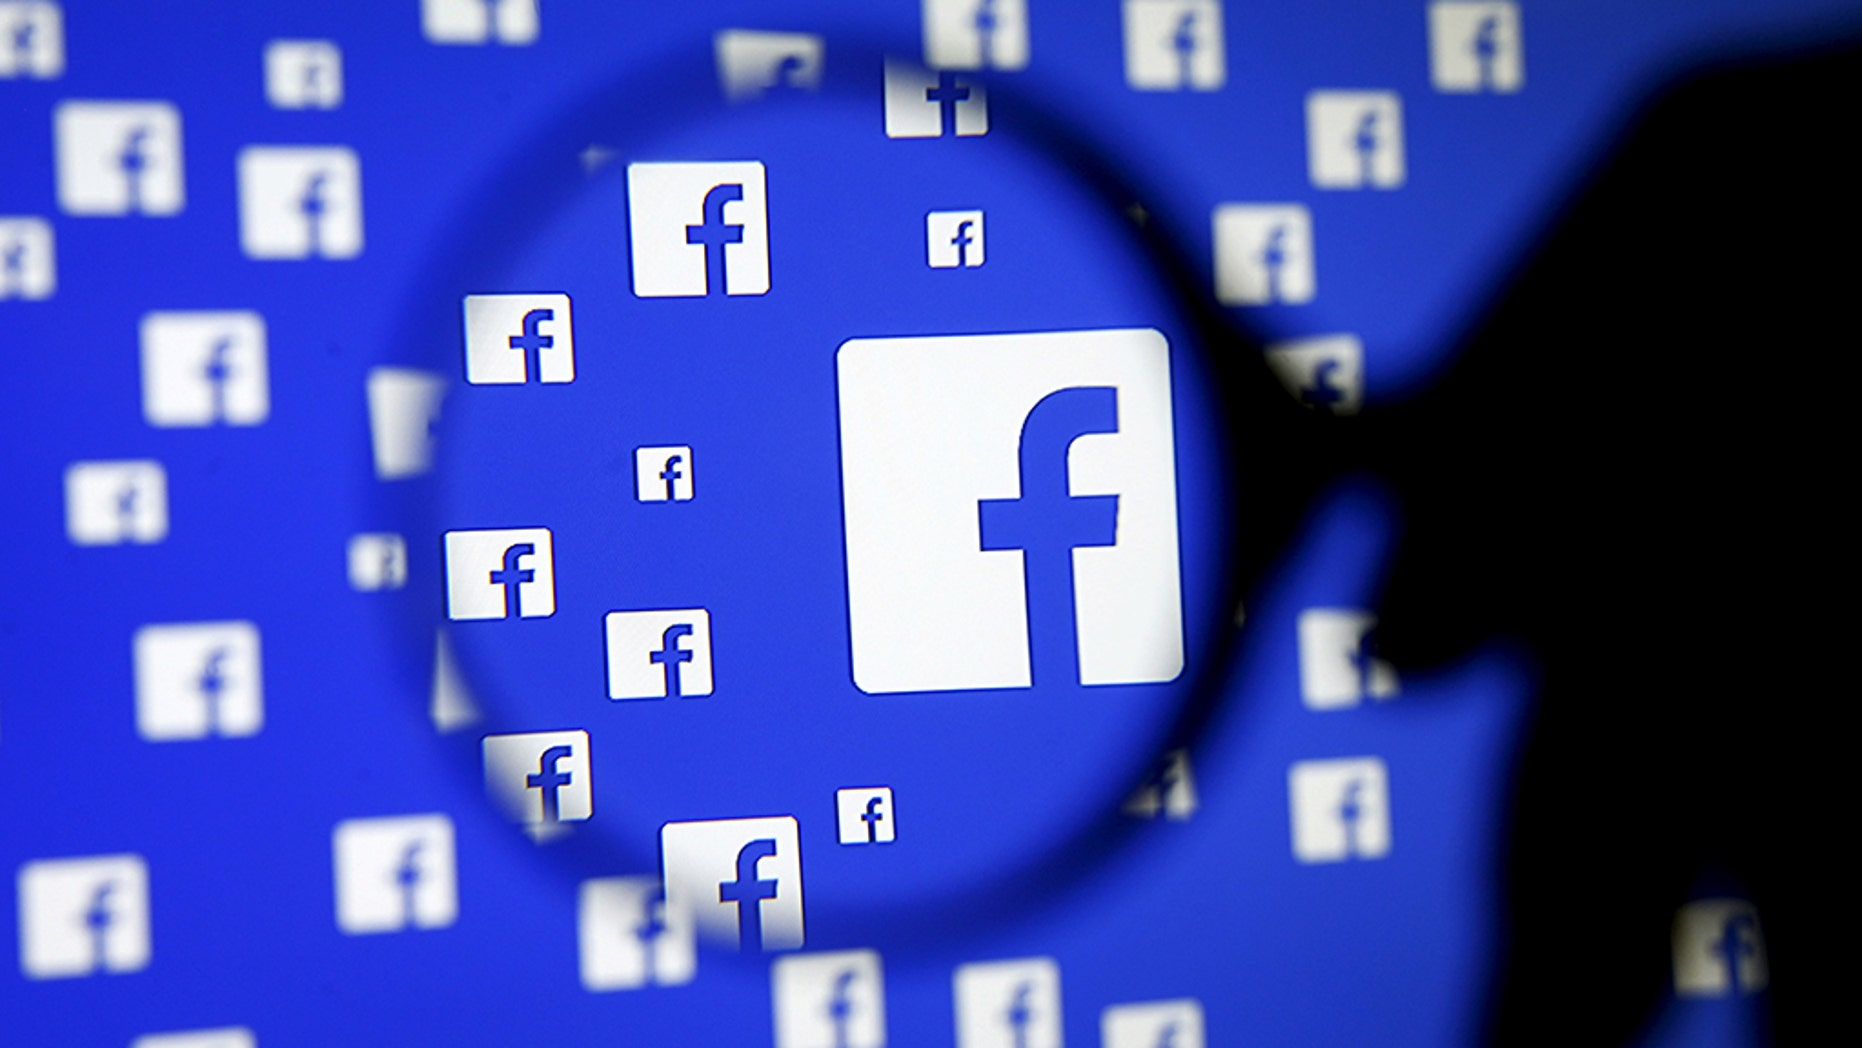 File photo: A man poses with a magnifier in front of a Facebook logo on display in this illustration taken in Sarajevo, Bosnia and Herzegovina, December 16, 2015. REUTERS/Dado Ruvic/Illustration